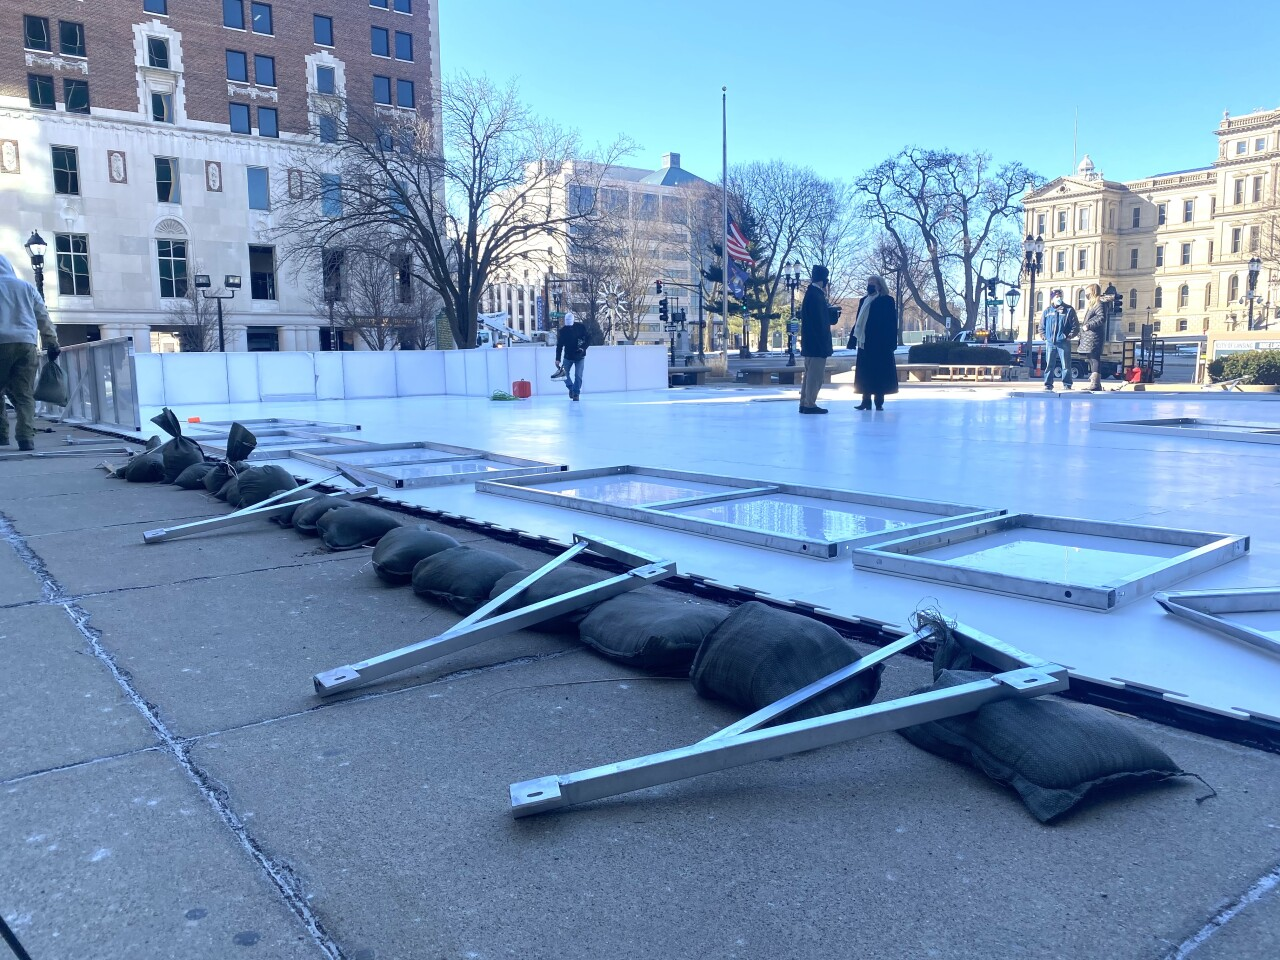 New ice skating rink officially opening tomorrow during winterfest